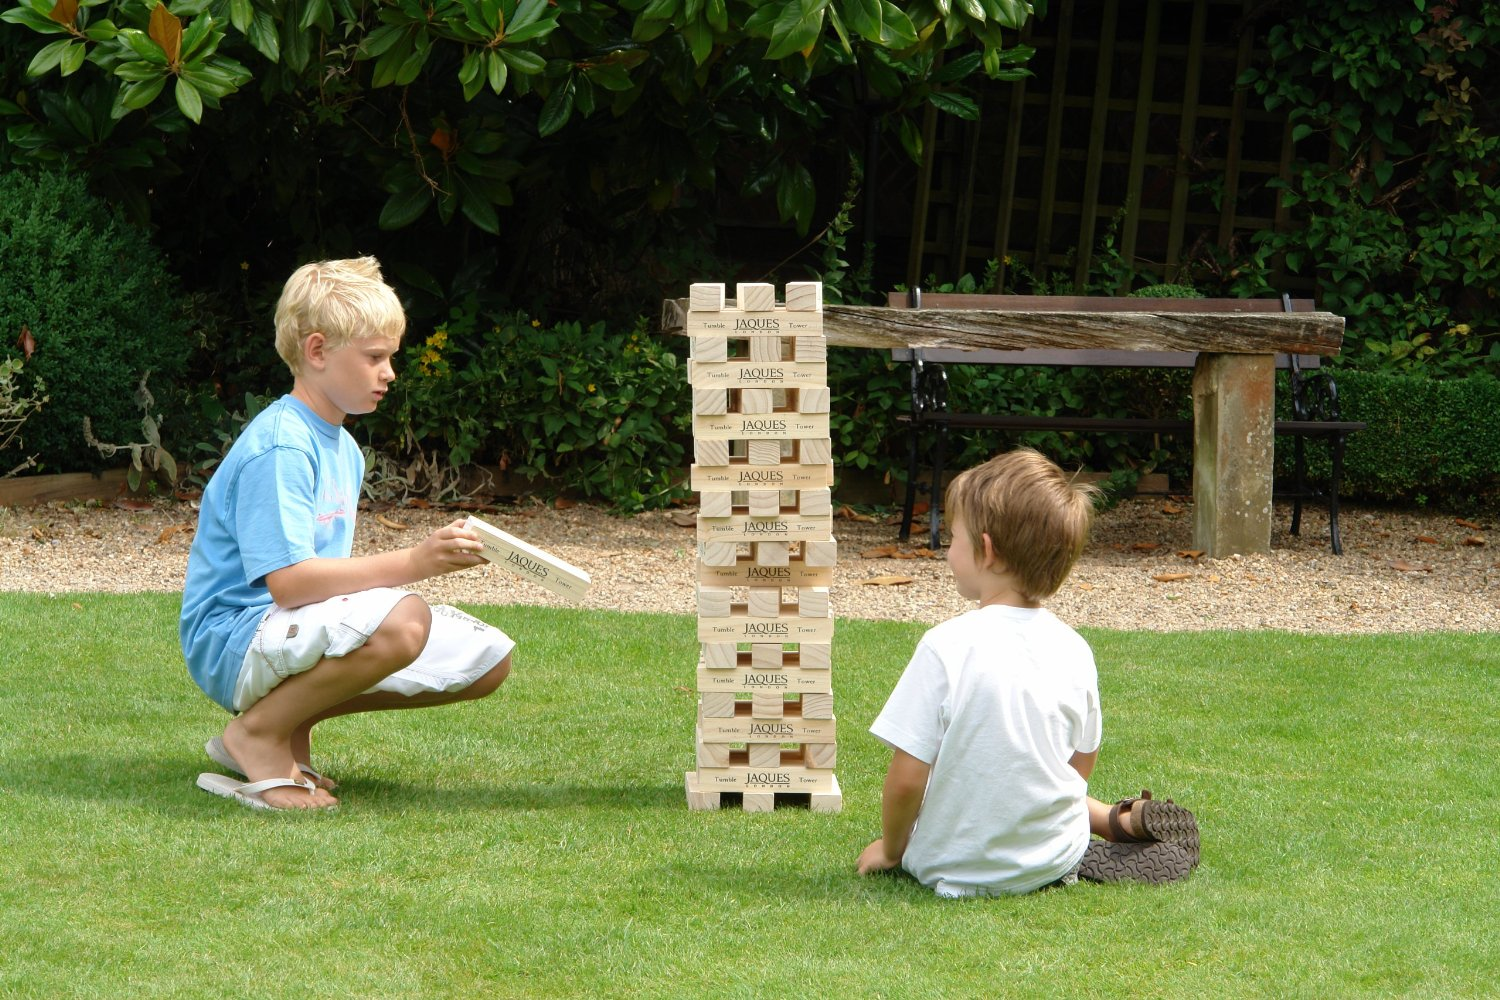 Enormous Jenga blocks | Sheknows.com